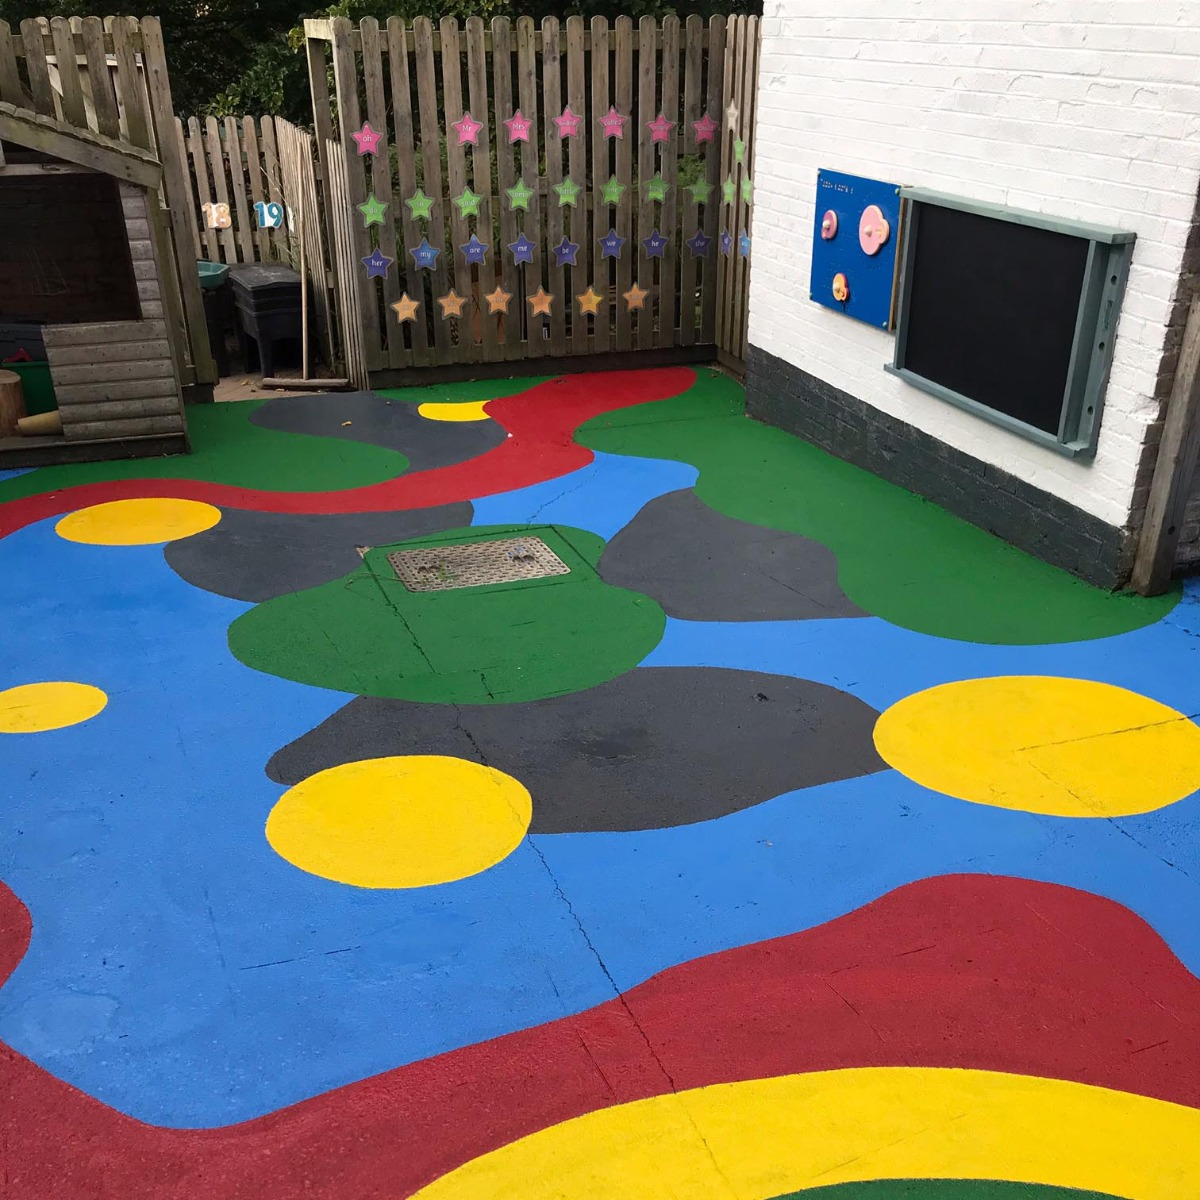 We've helped to brighten up Tealby School's playground